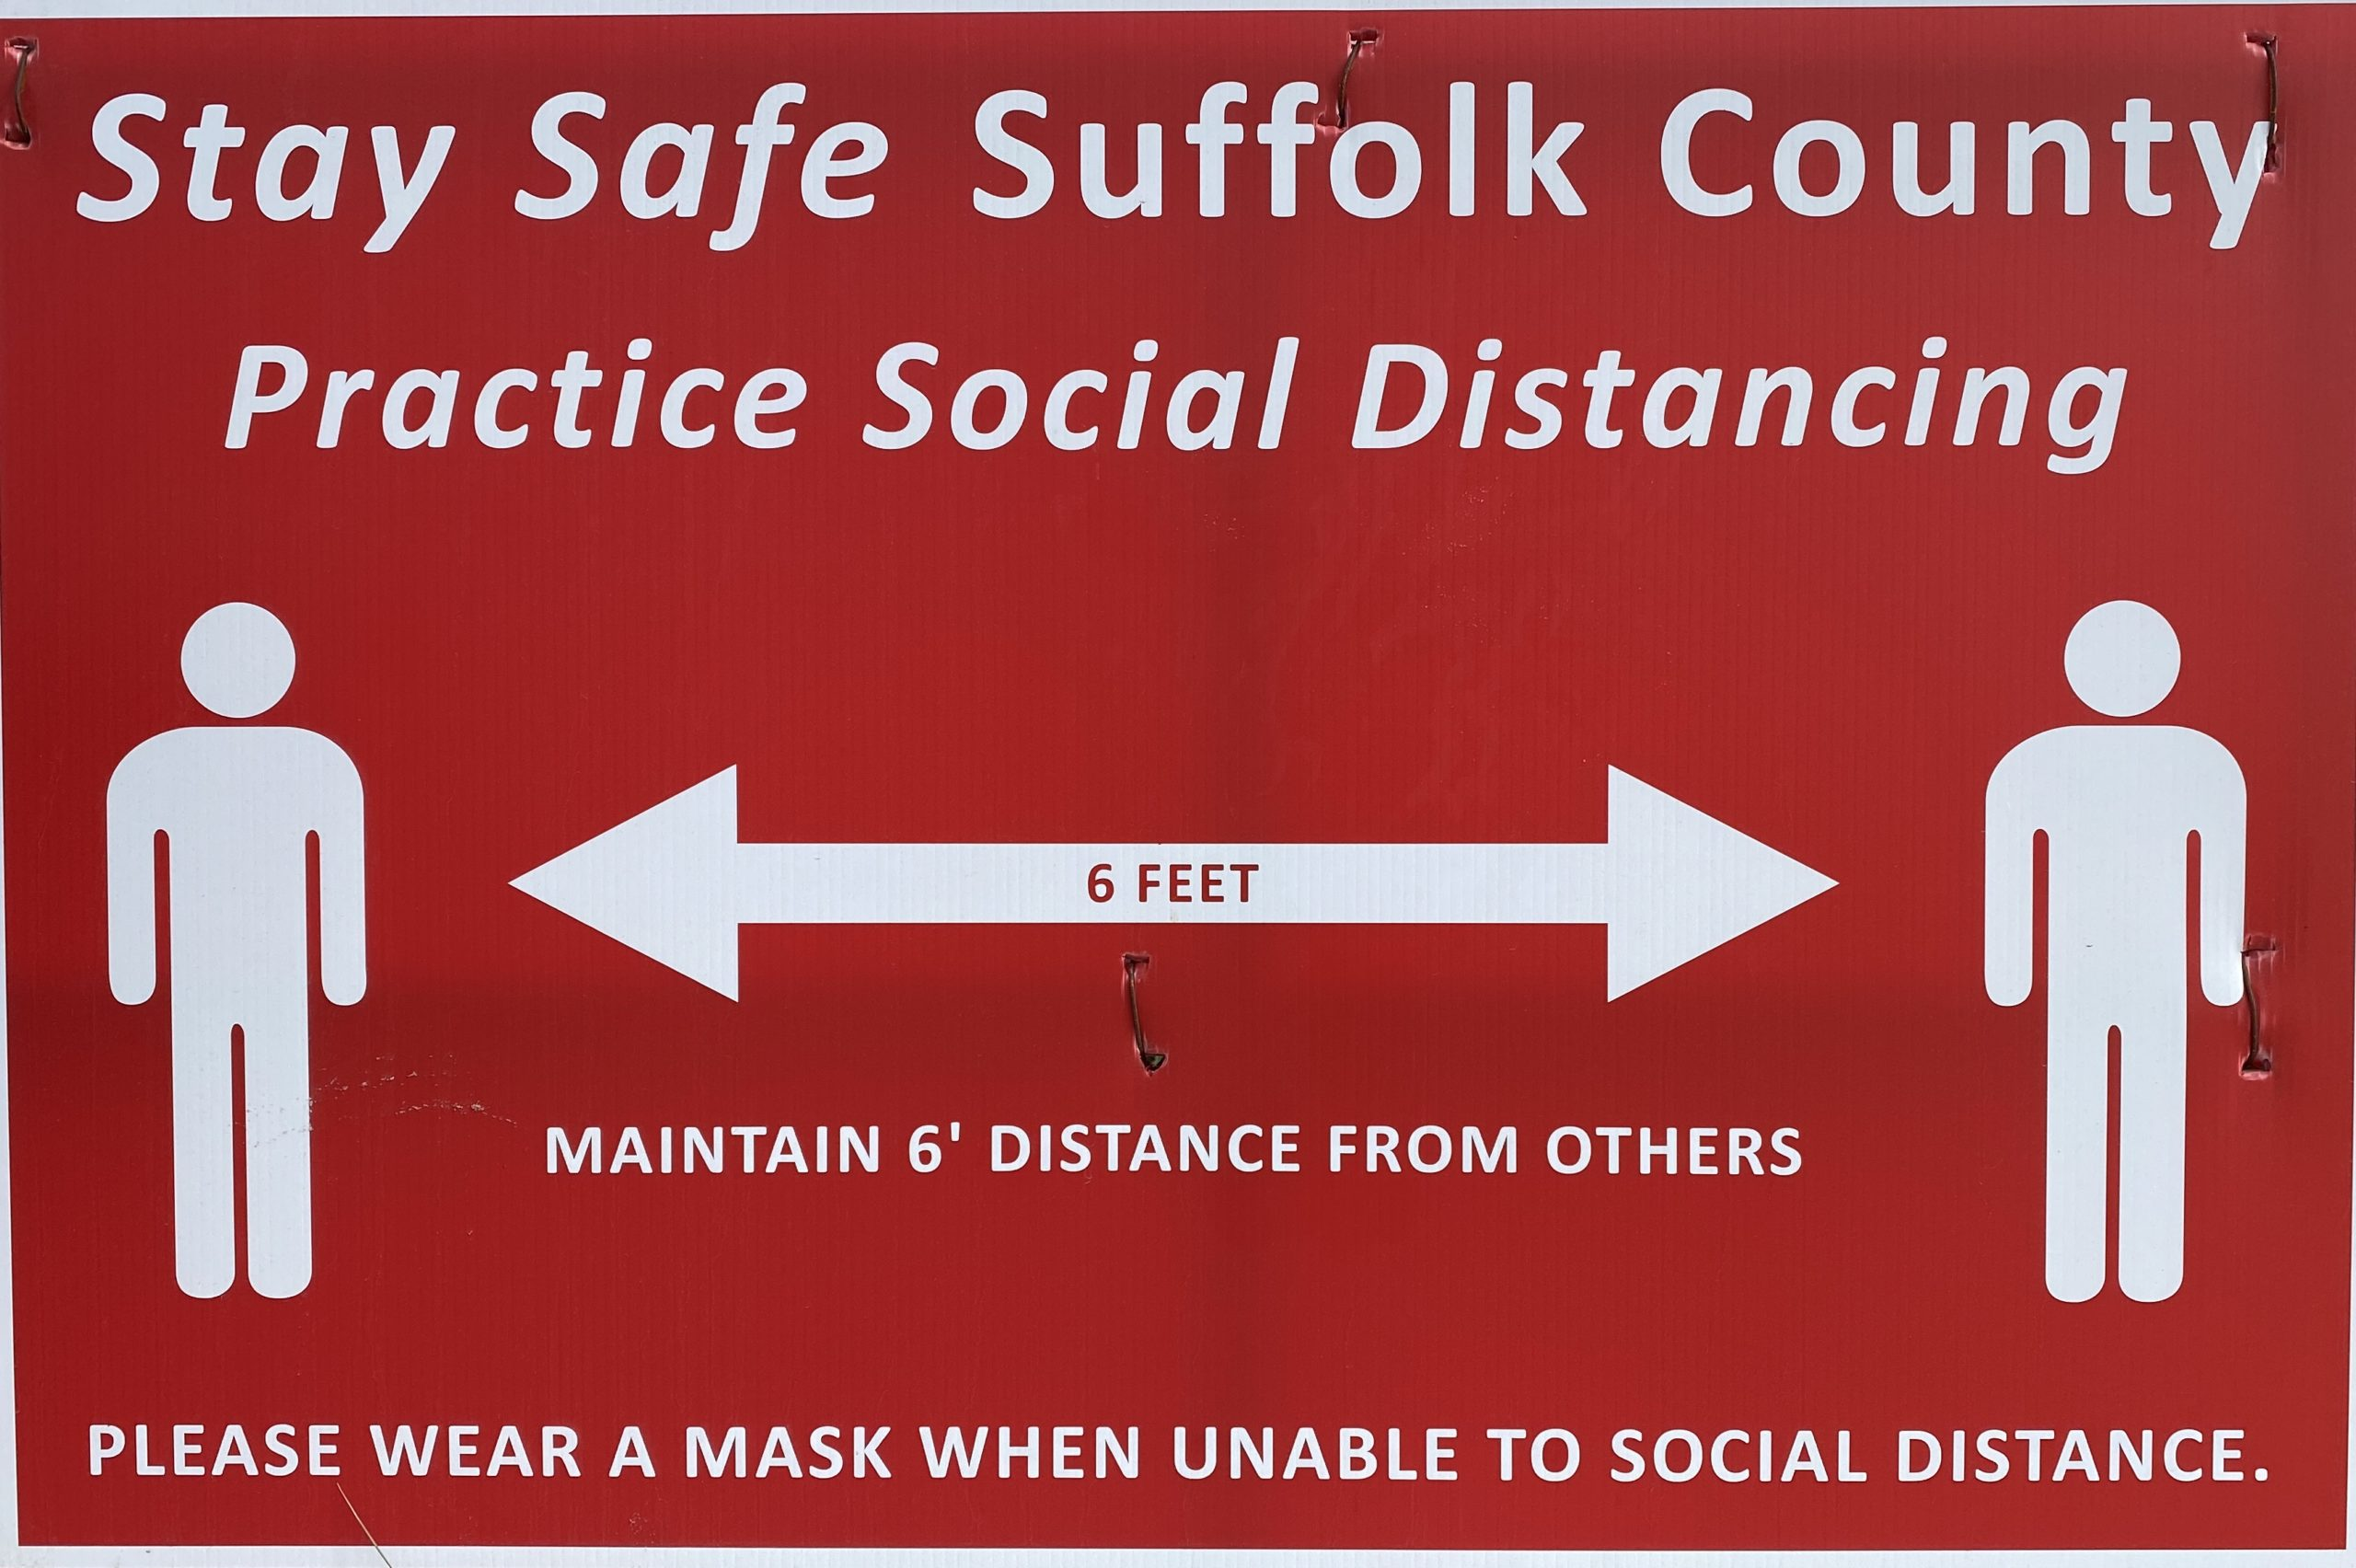 Stay Safe Suffolk County